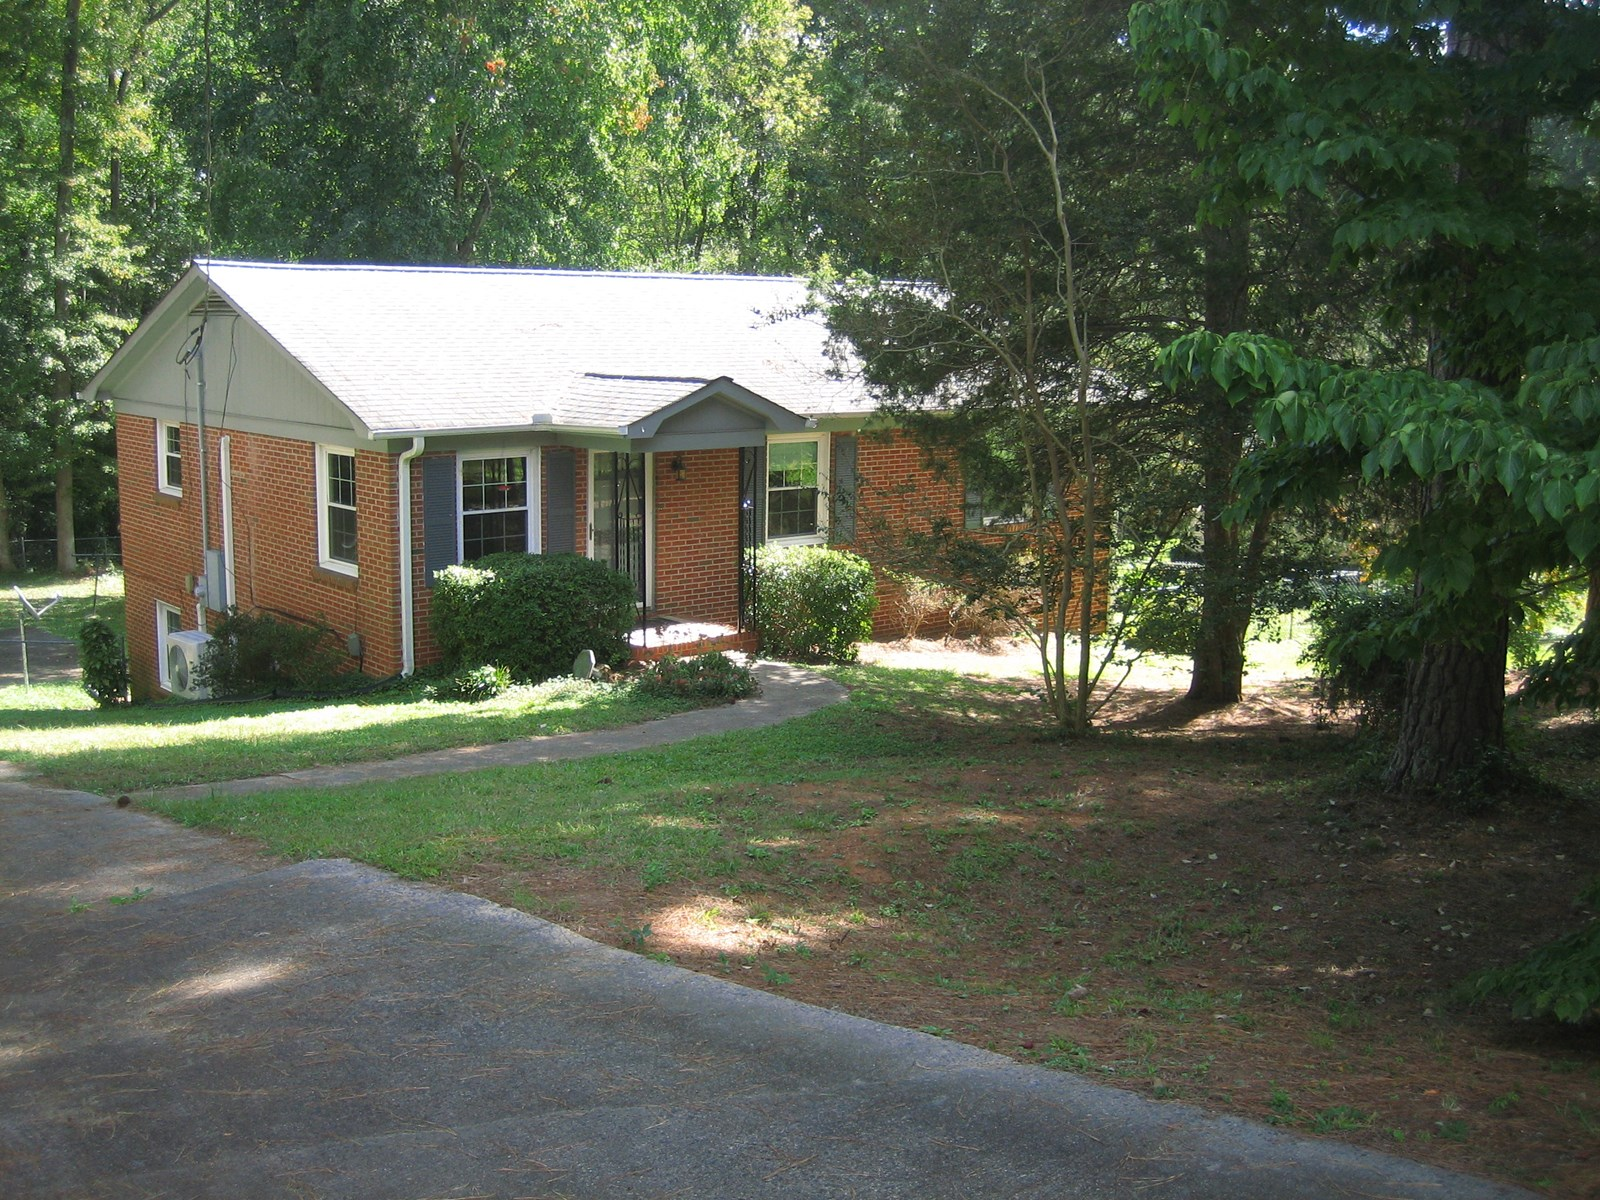 Home For Sale in Matthews NC